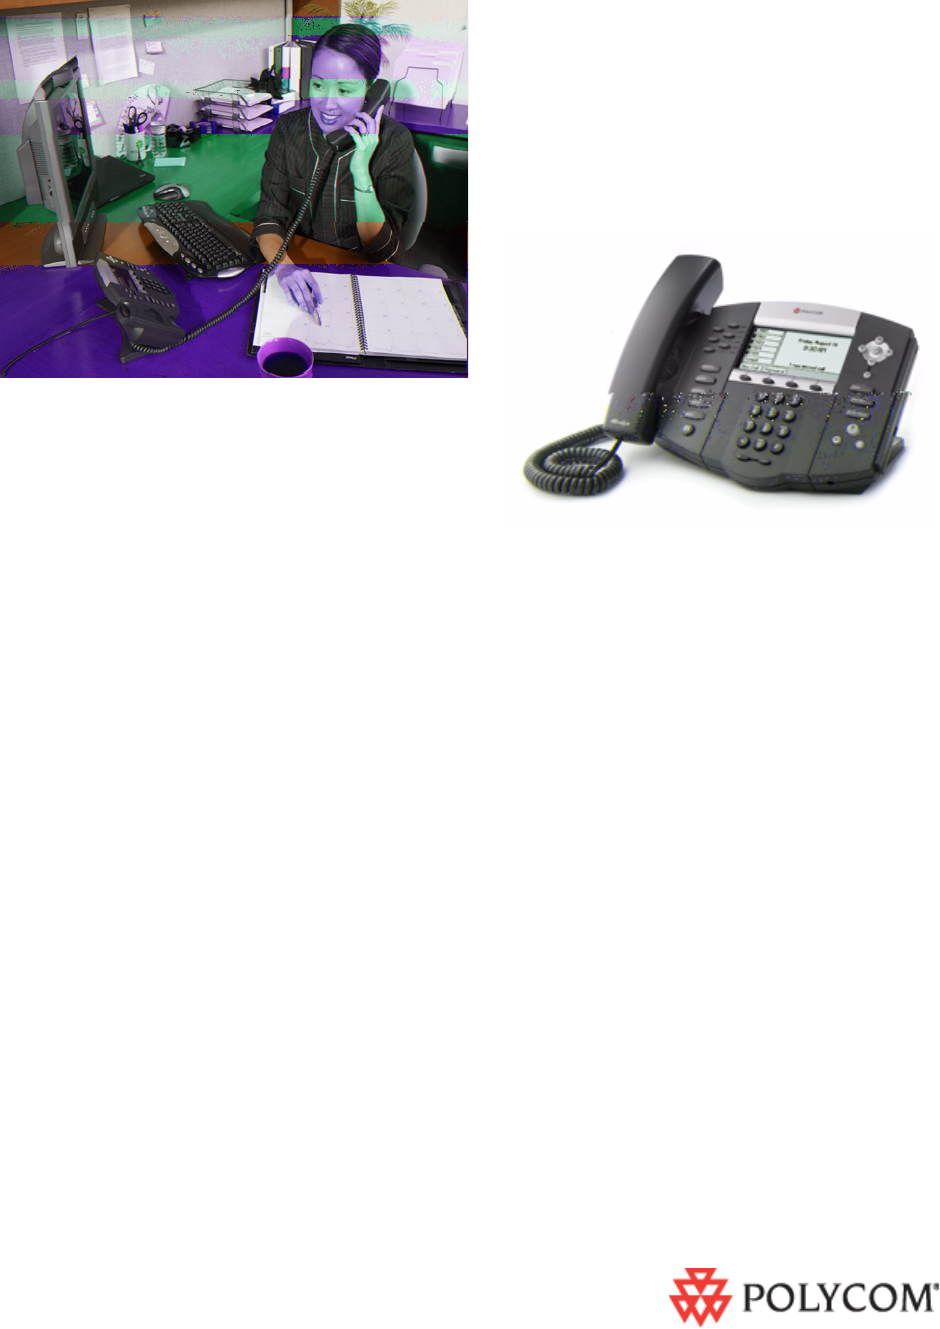 polycom telephone ip 650 user guide manualsonline com rh phone manualsonline com soundpoint ip 650 user manual soundpoint ip 650 user manual